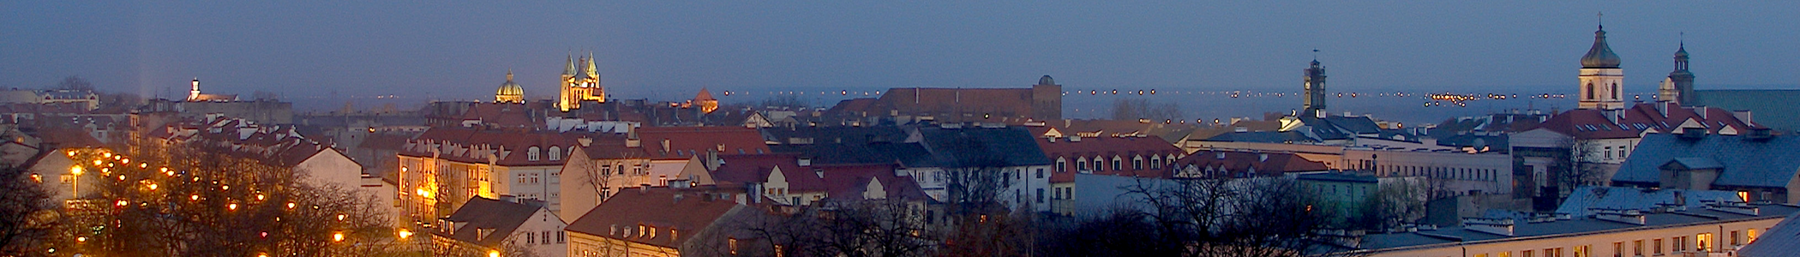 Płock Wikivoyage Banner.png